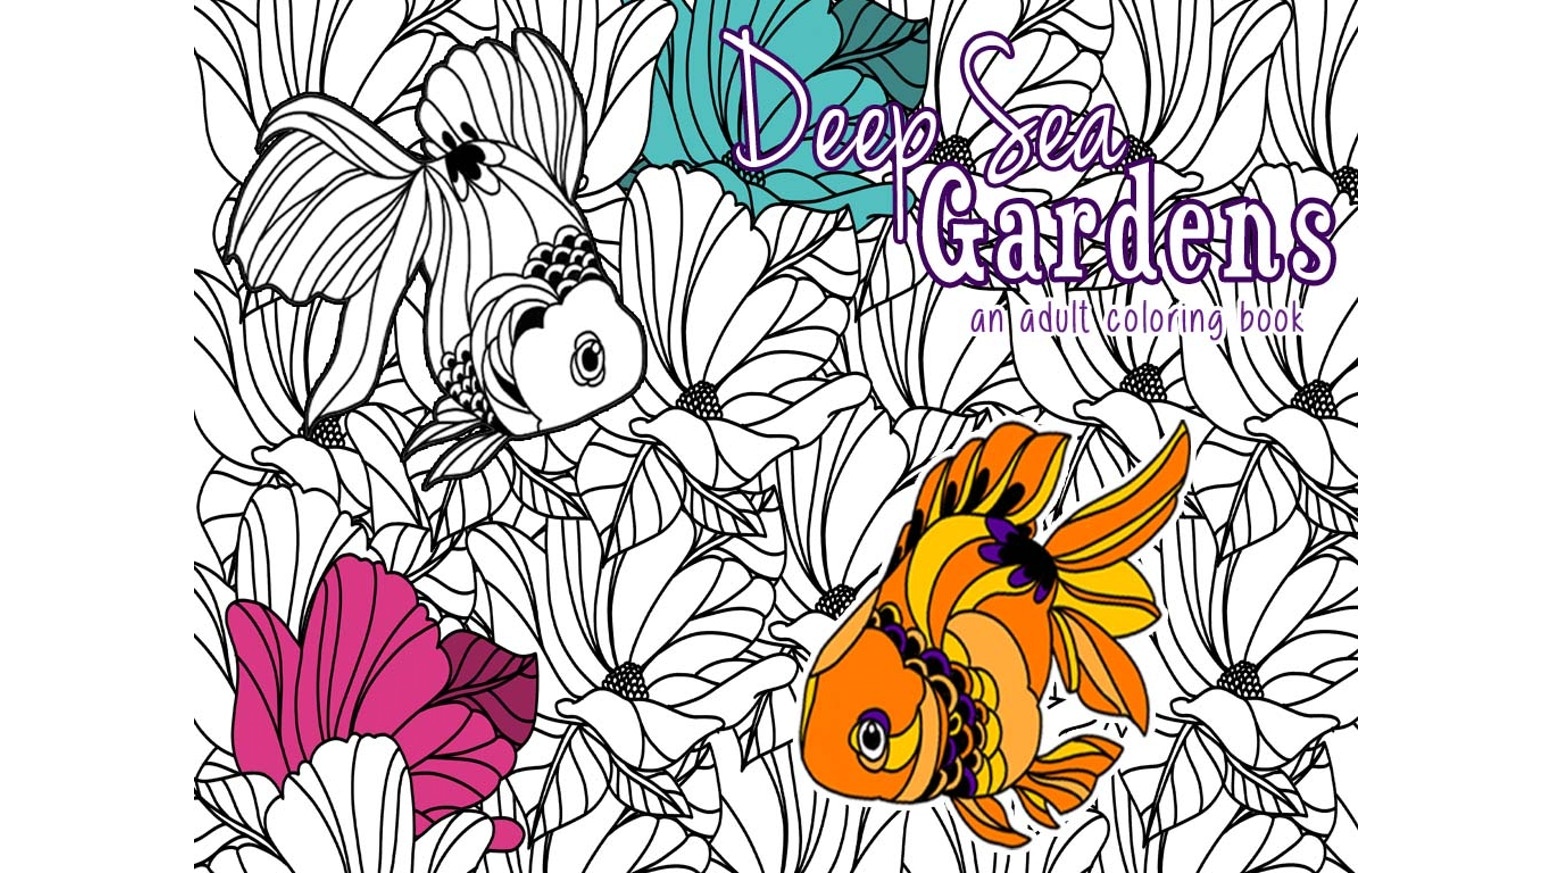 Coloring book html5 - A Captivating Underwater Coloring Book That Brings The Beauty Of Flora And The Enchantment Of Different